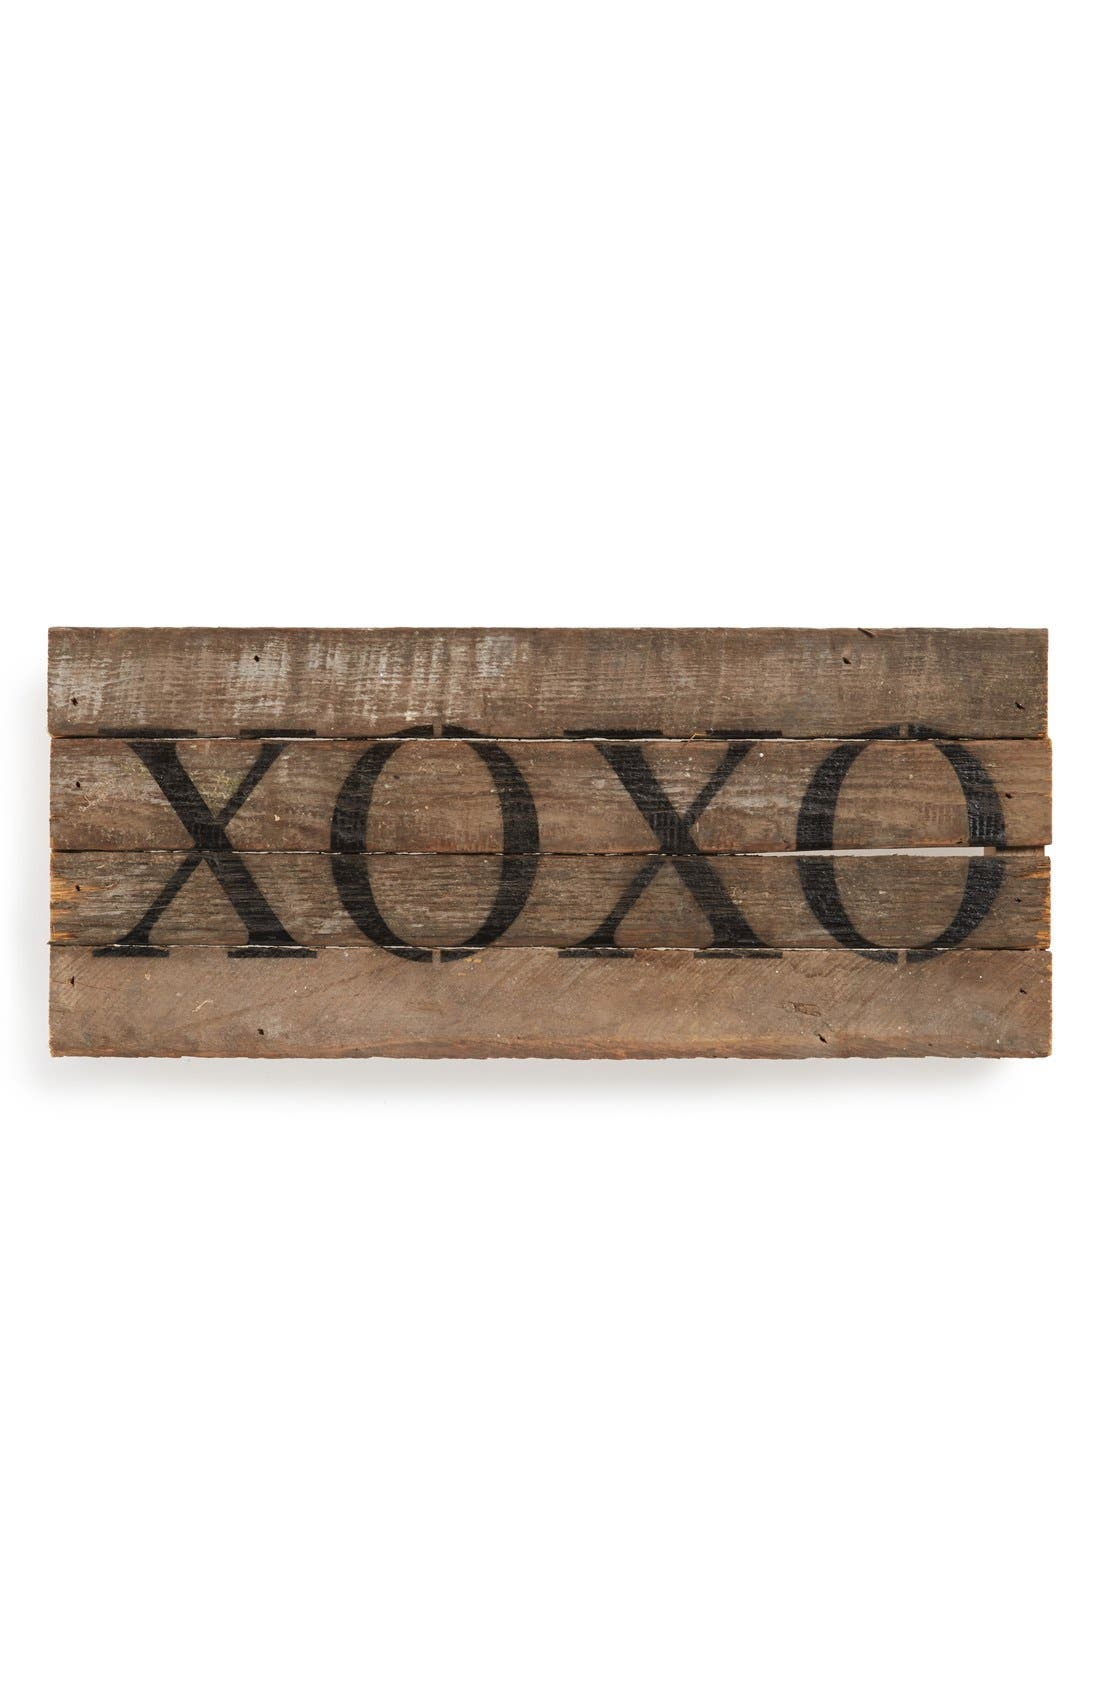 Alternate Image 1 Selected - Second Nature by Hand 'XOXO' Repurposed Wood Wall Art